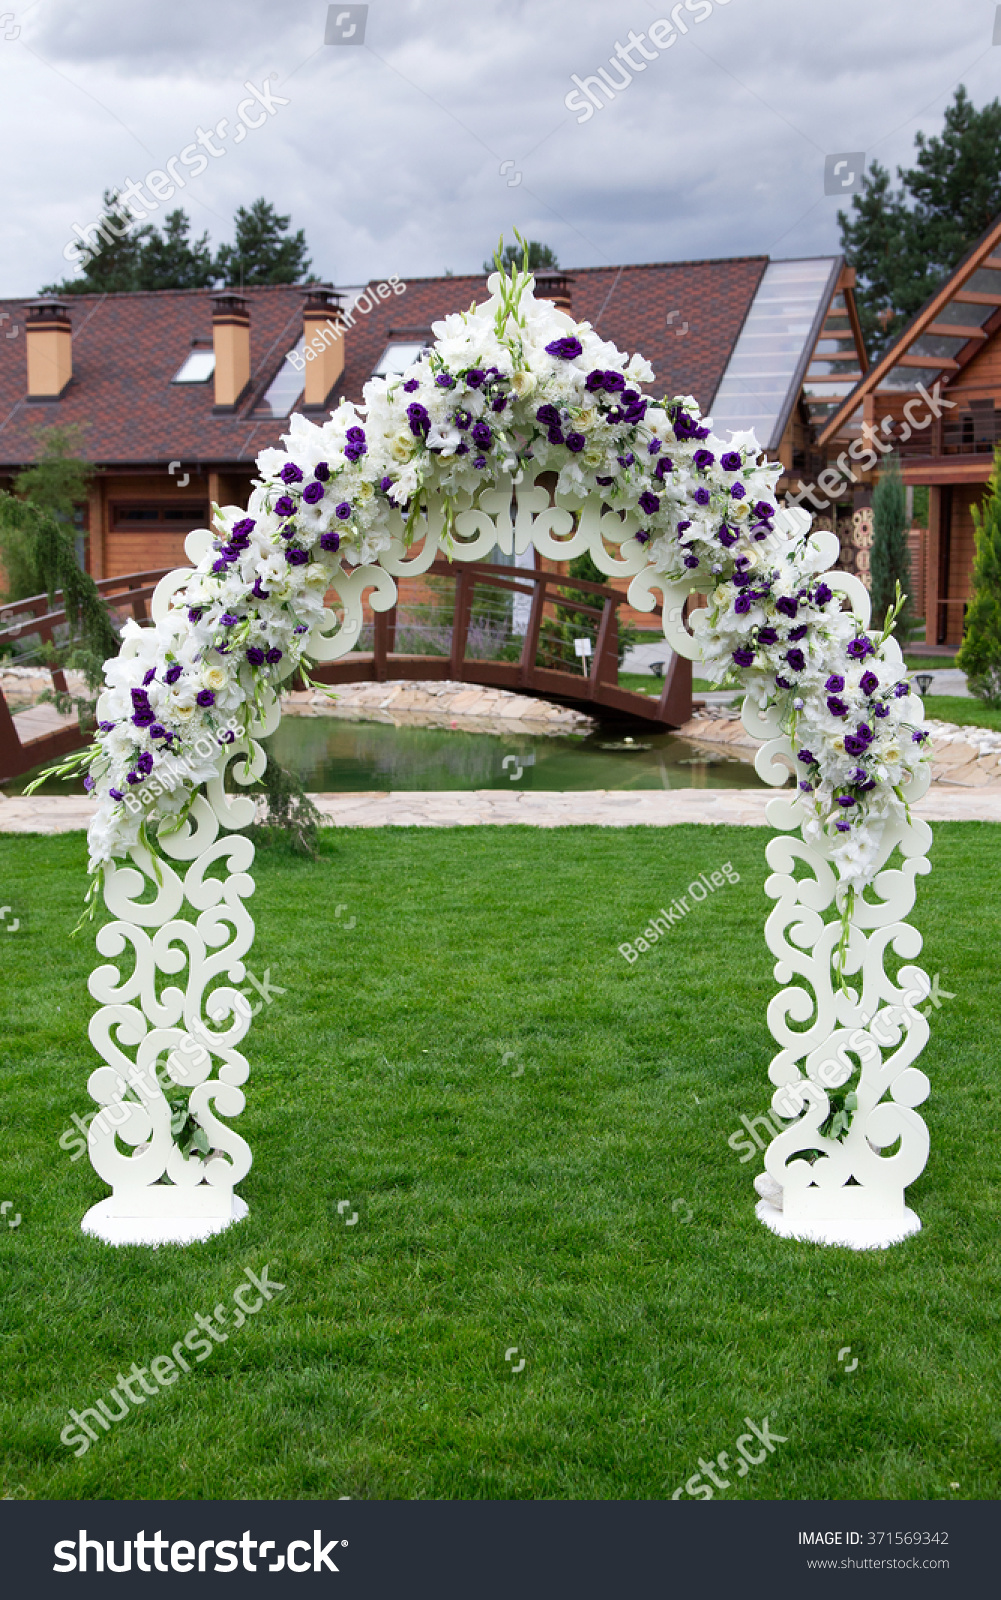 Wooden Arch And Chairs At Wedding Ceremony Stock Photo 371569342 Shutterstock